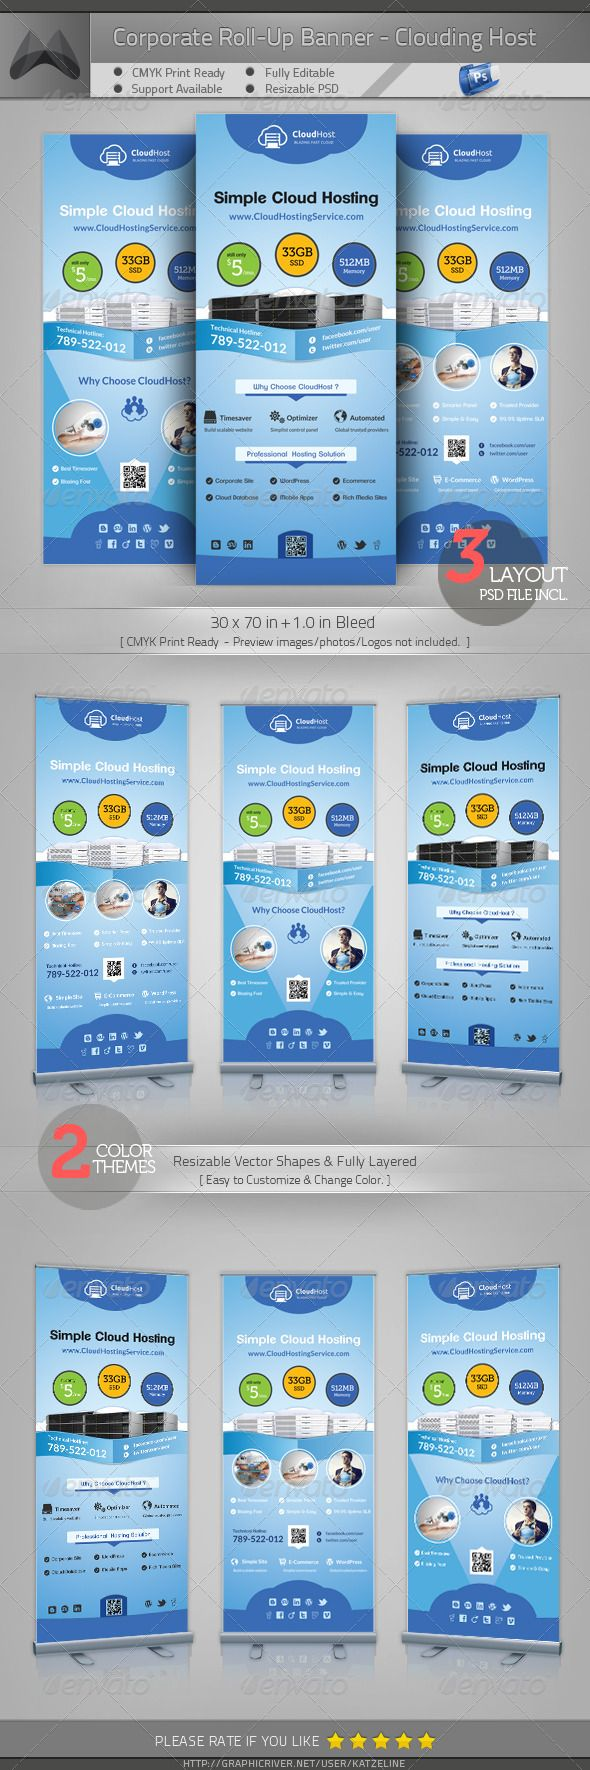 The 112 best roll up banner images on Pinterest | Banner template ...